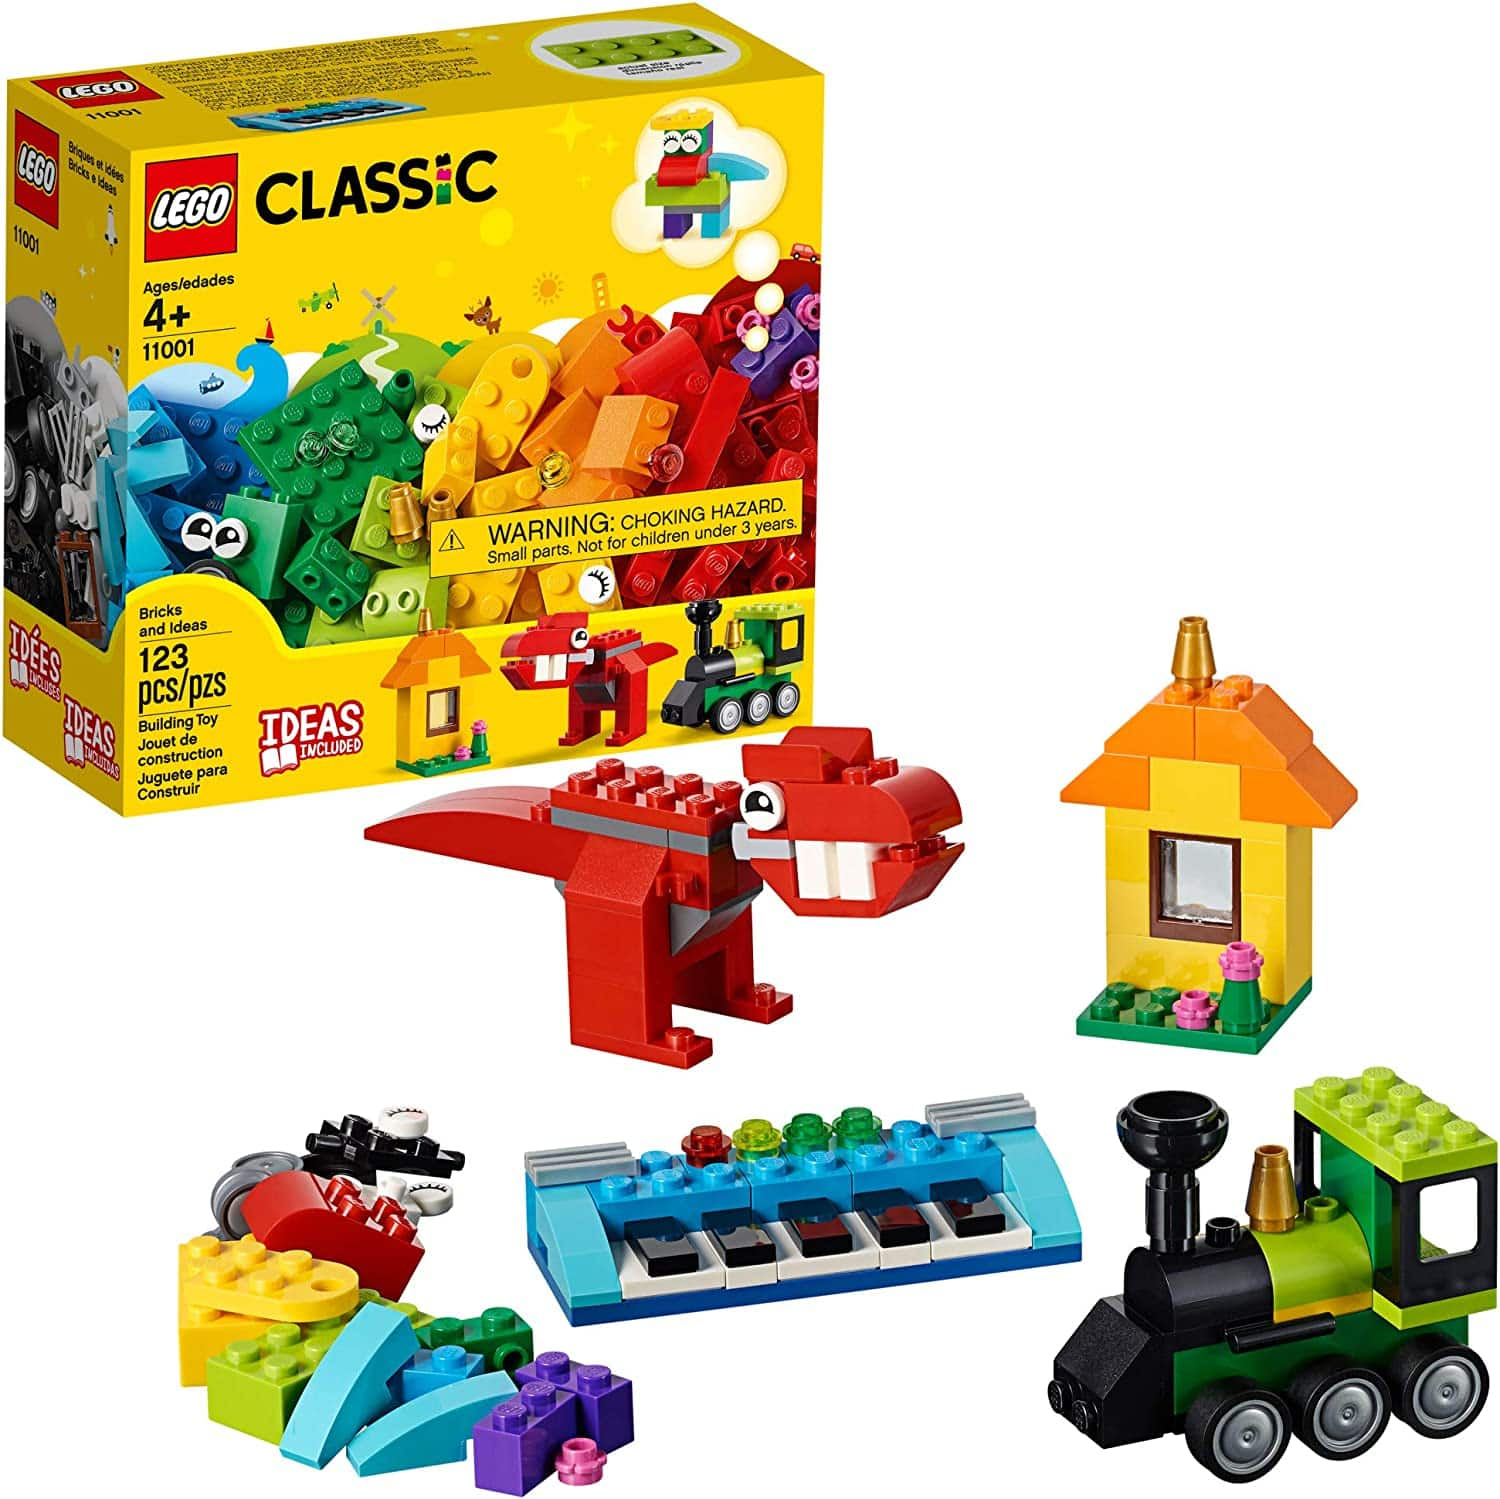 123-Piece LEGO Classic Bricks and Ideas Building Kit